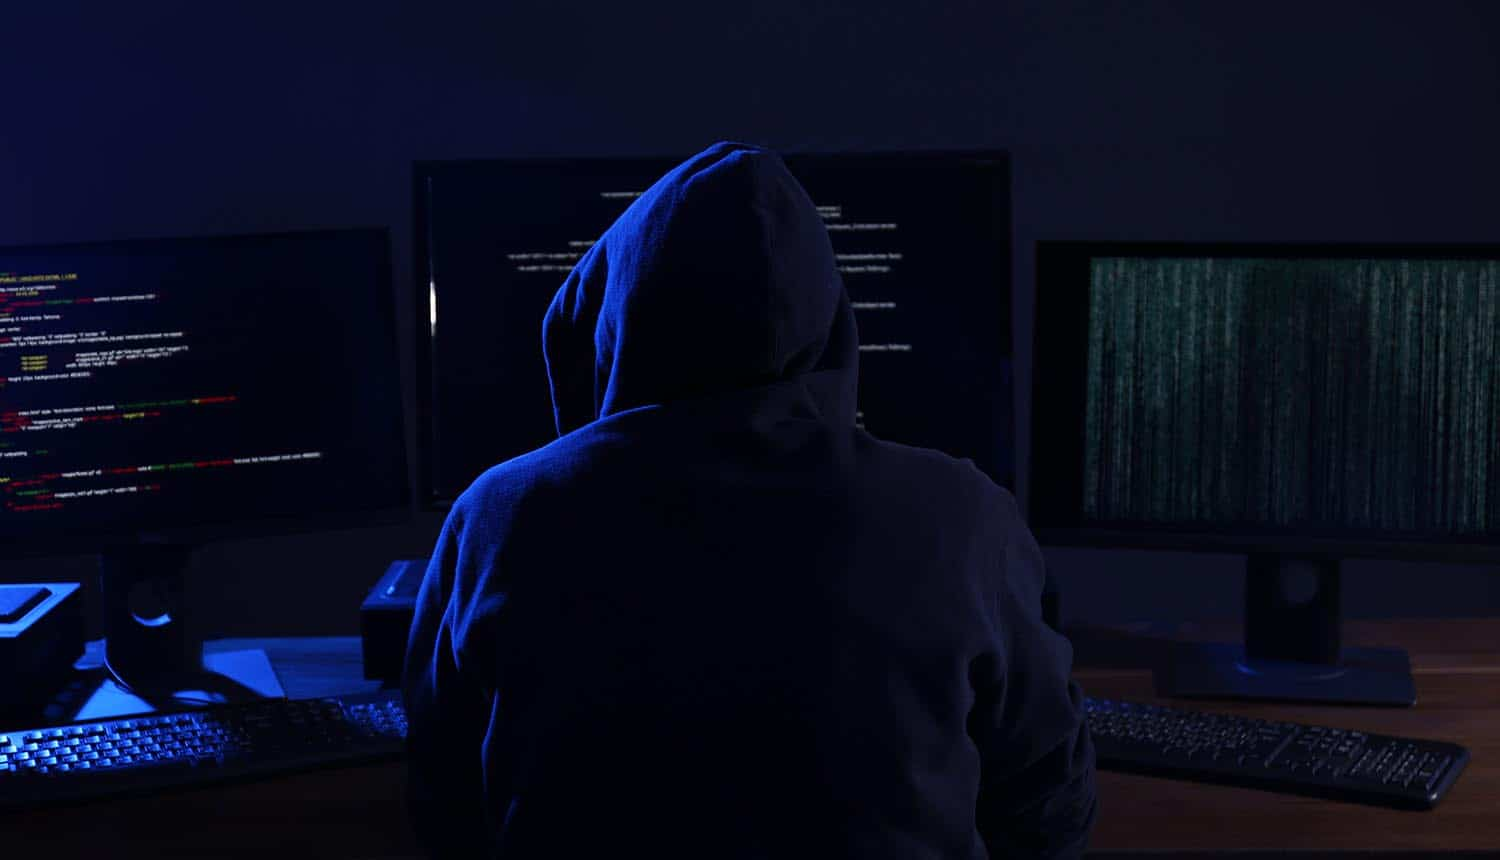 Hacker with computers in dark room showing Experian data breach